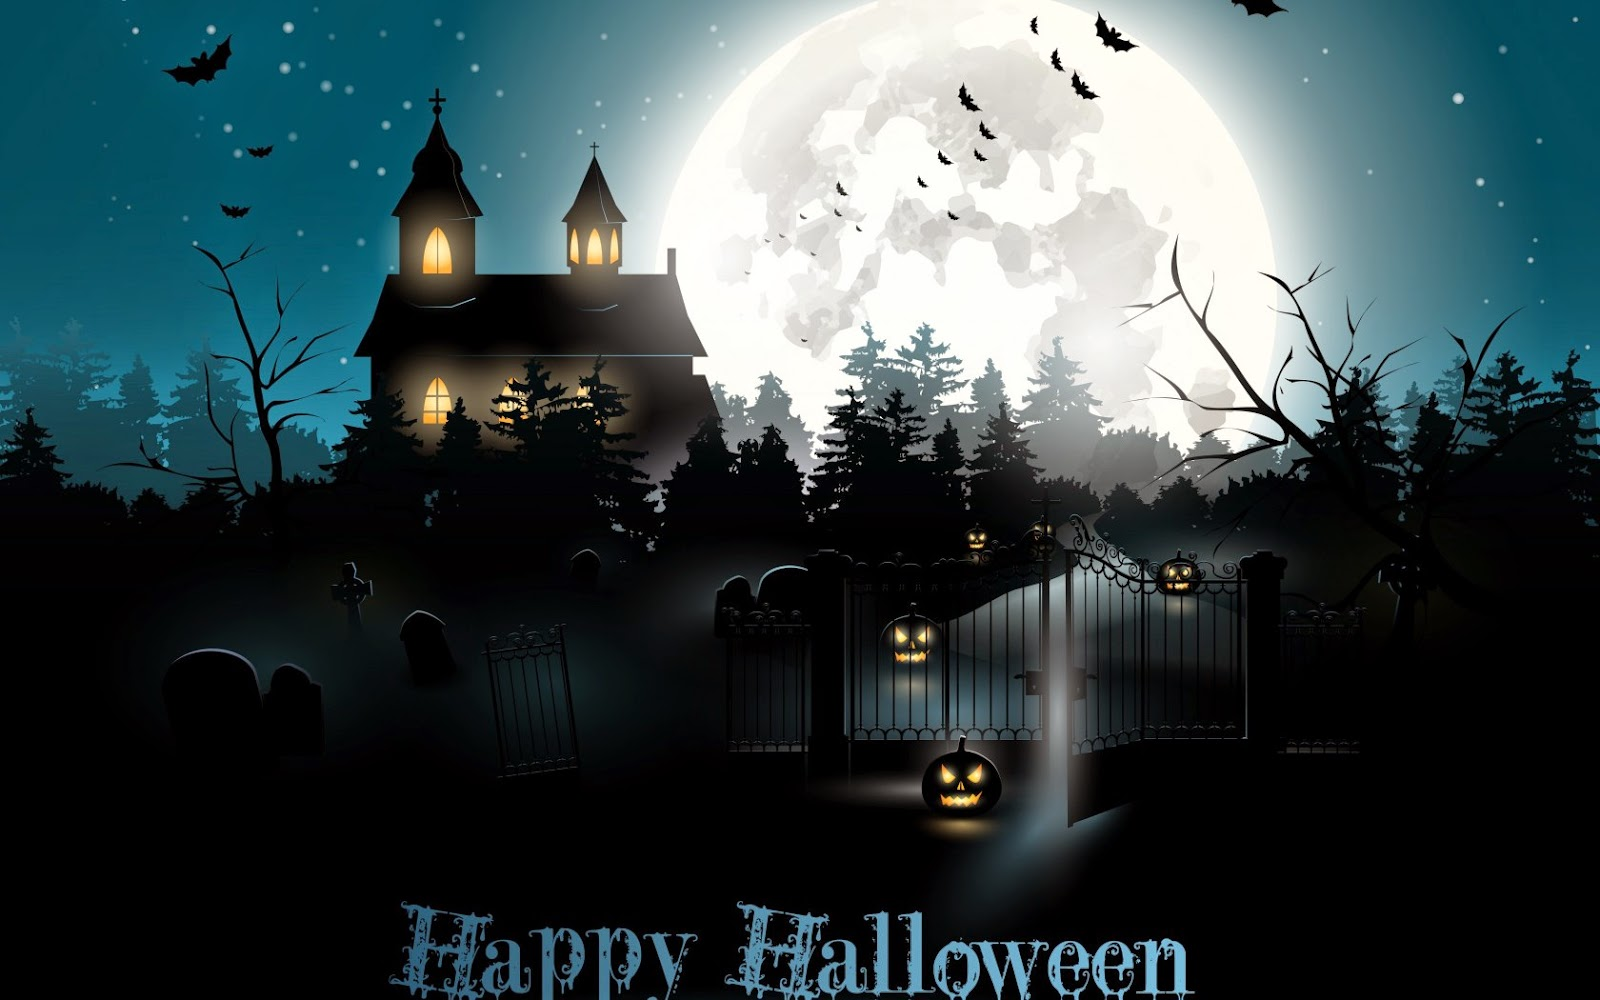 Halloween Haunted House Full White Moon Black Theme